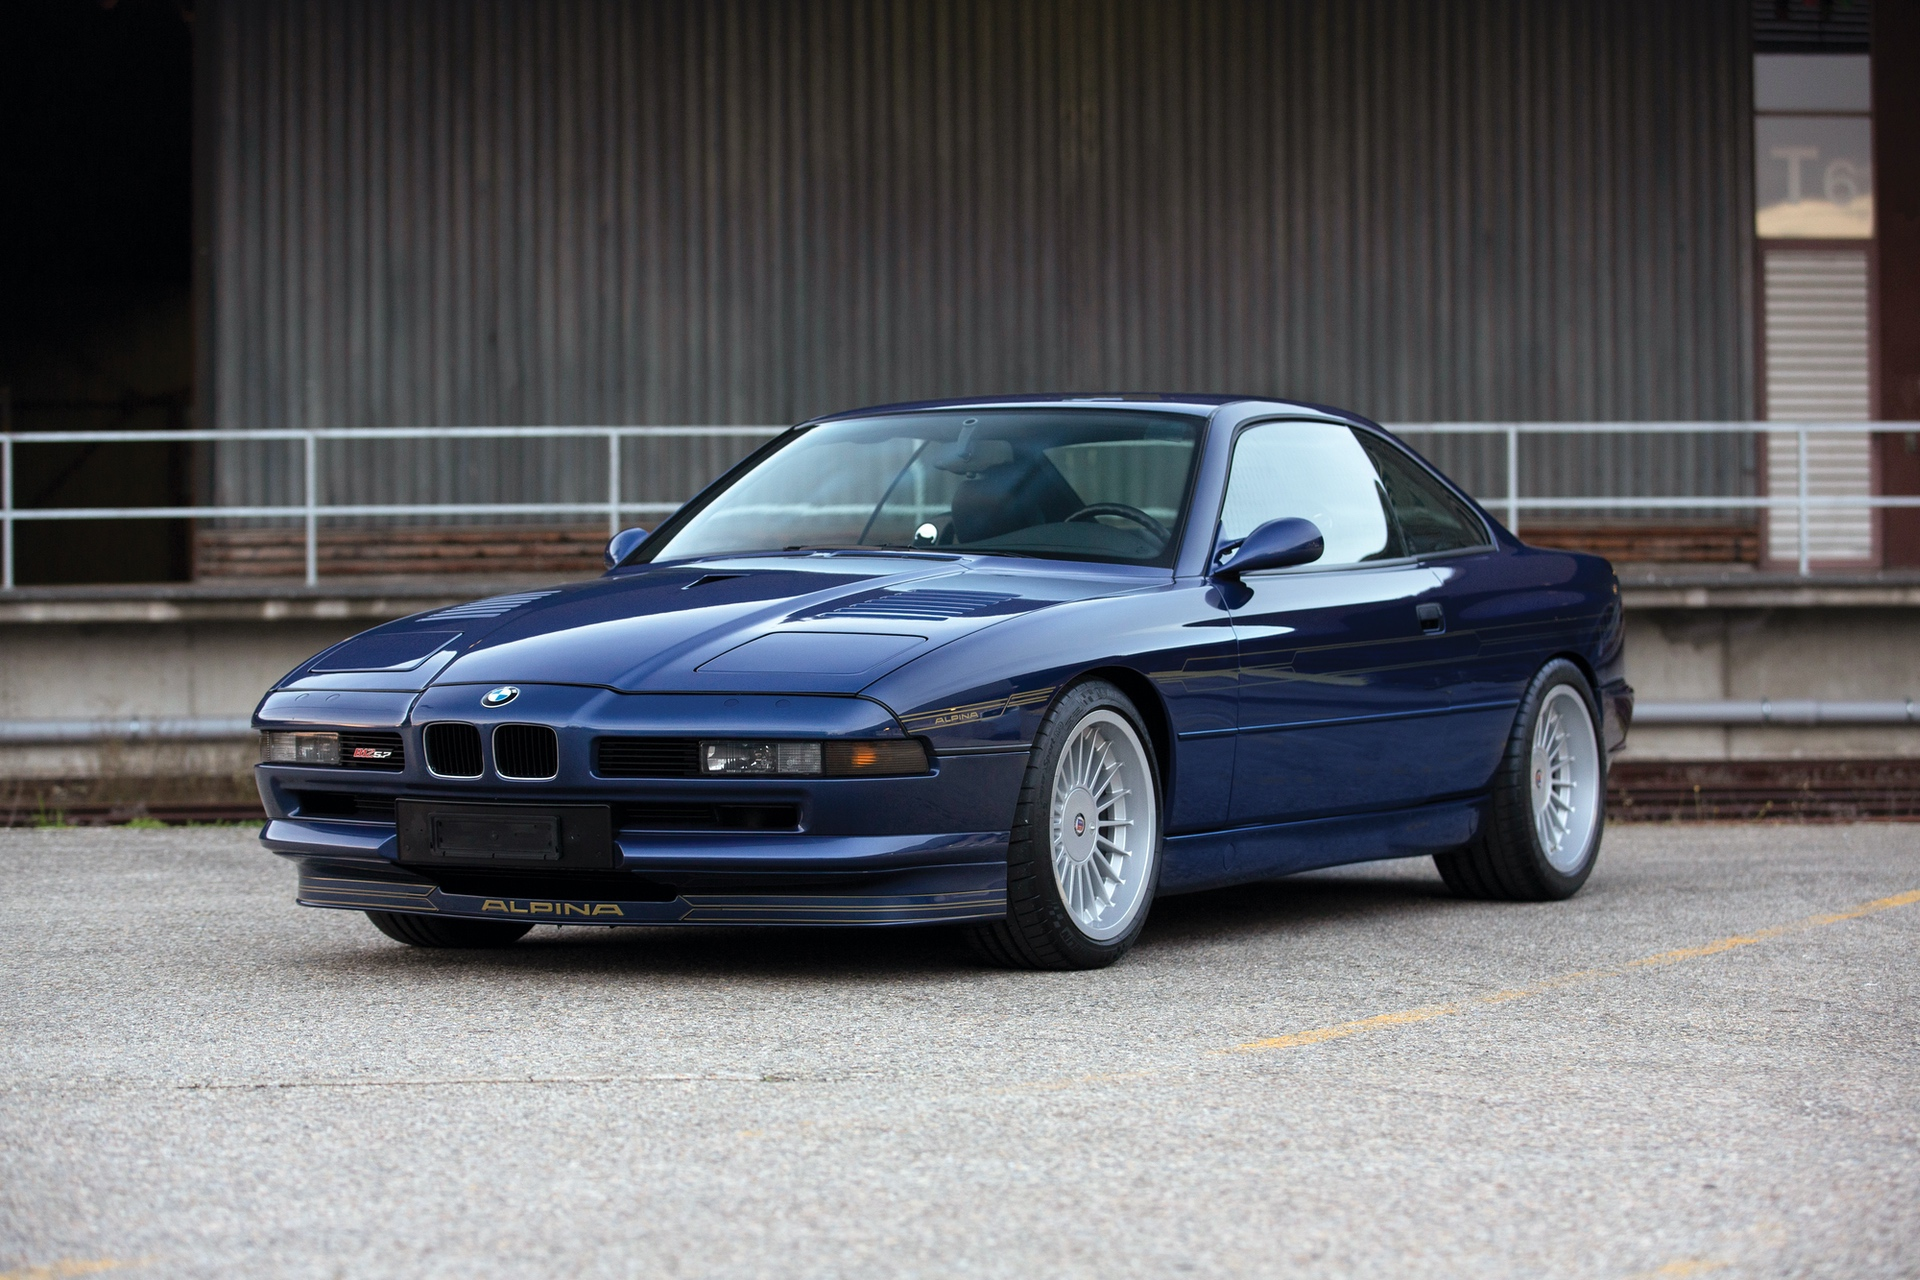 1993-BMW-Alpina-B12-5-7-Coupe-_0